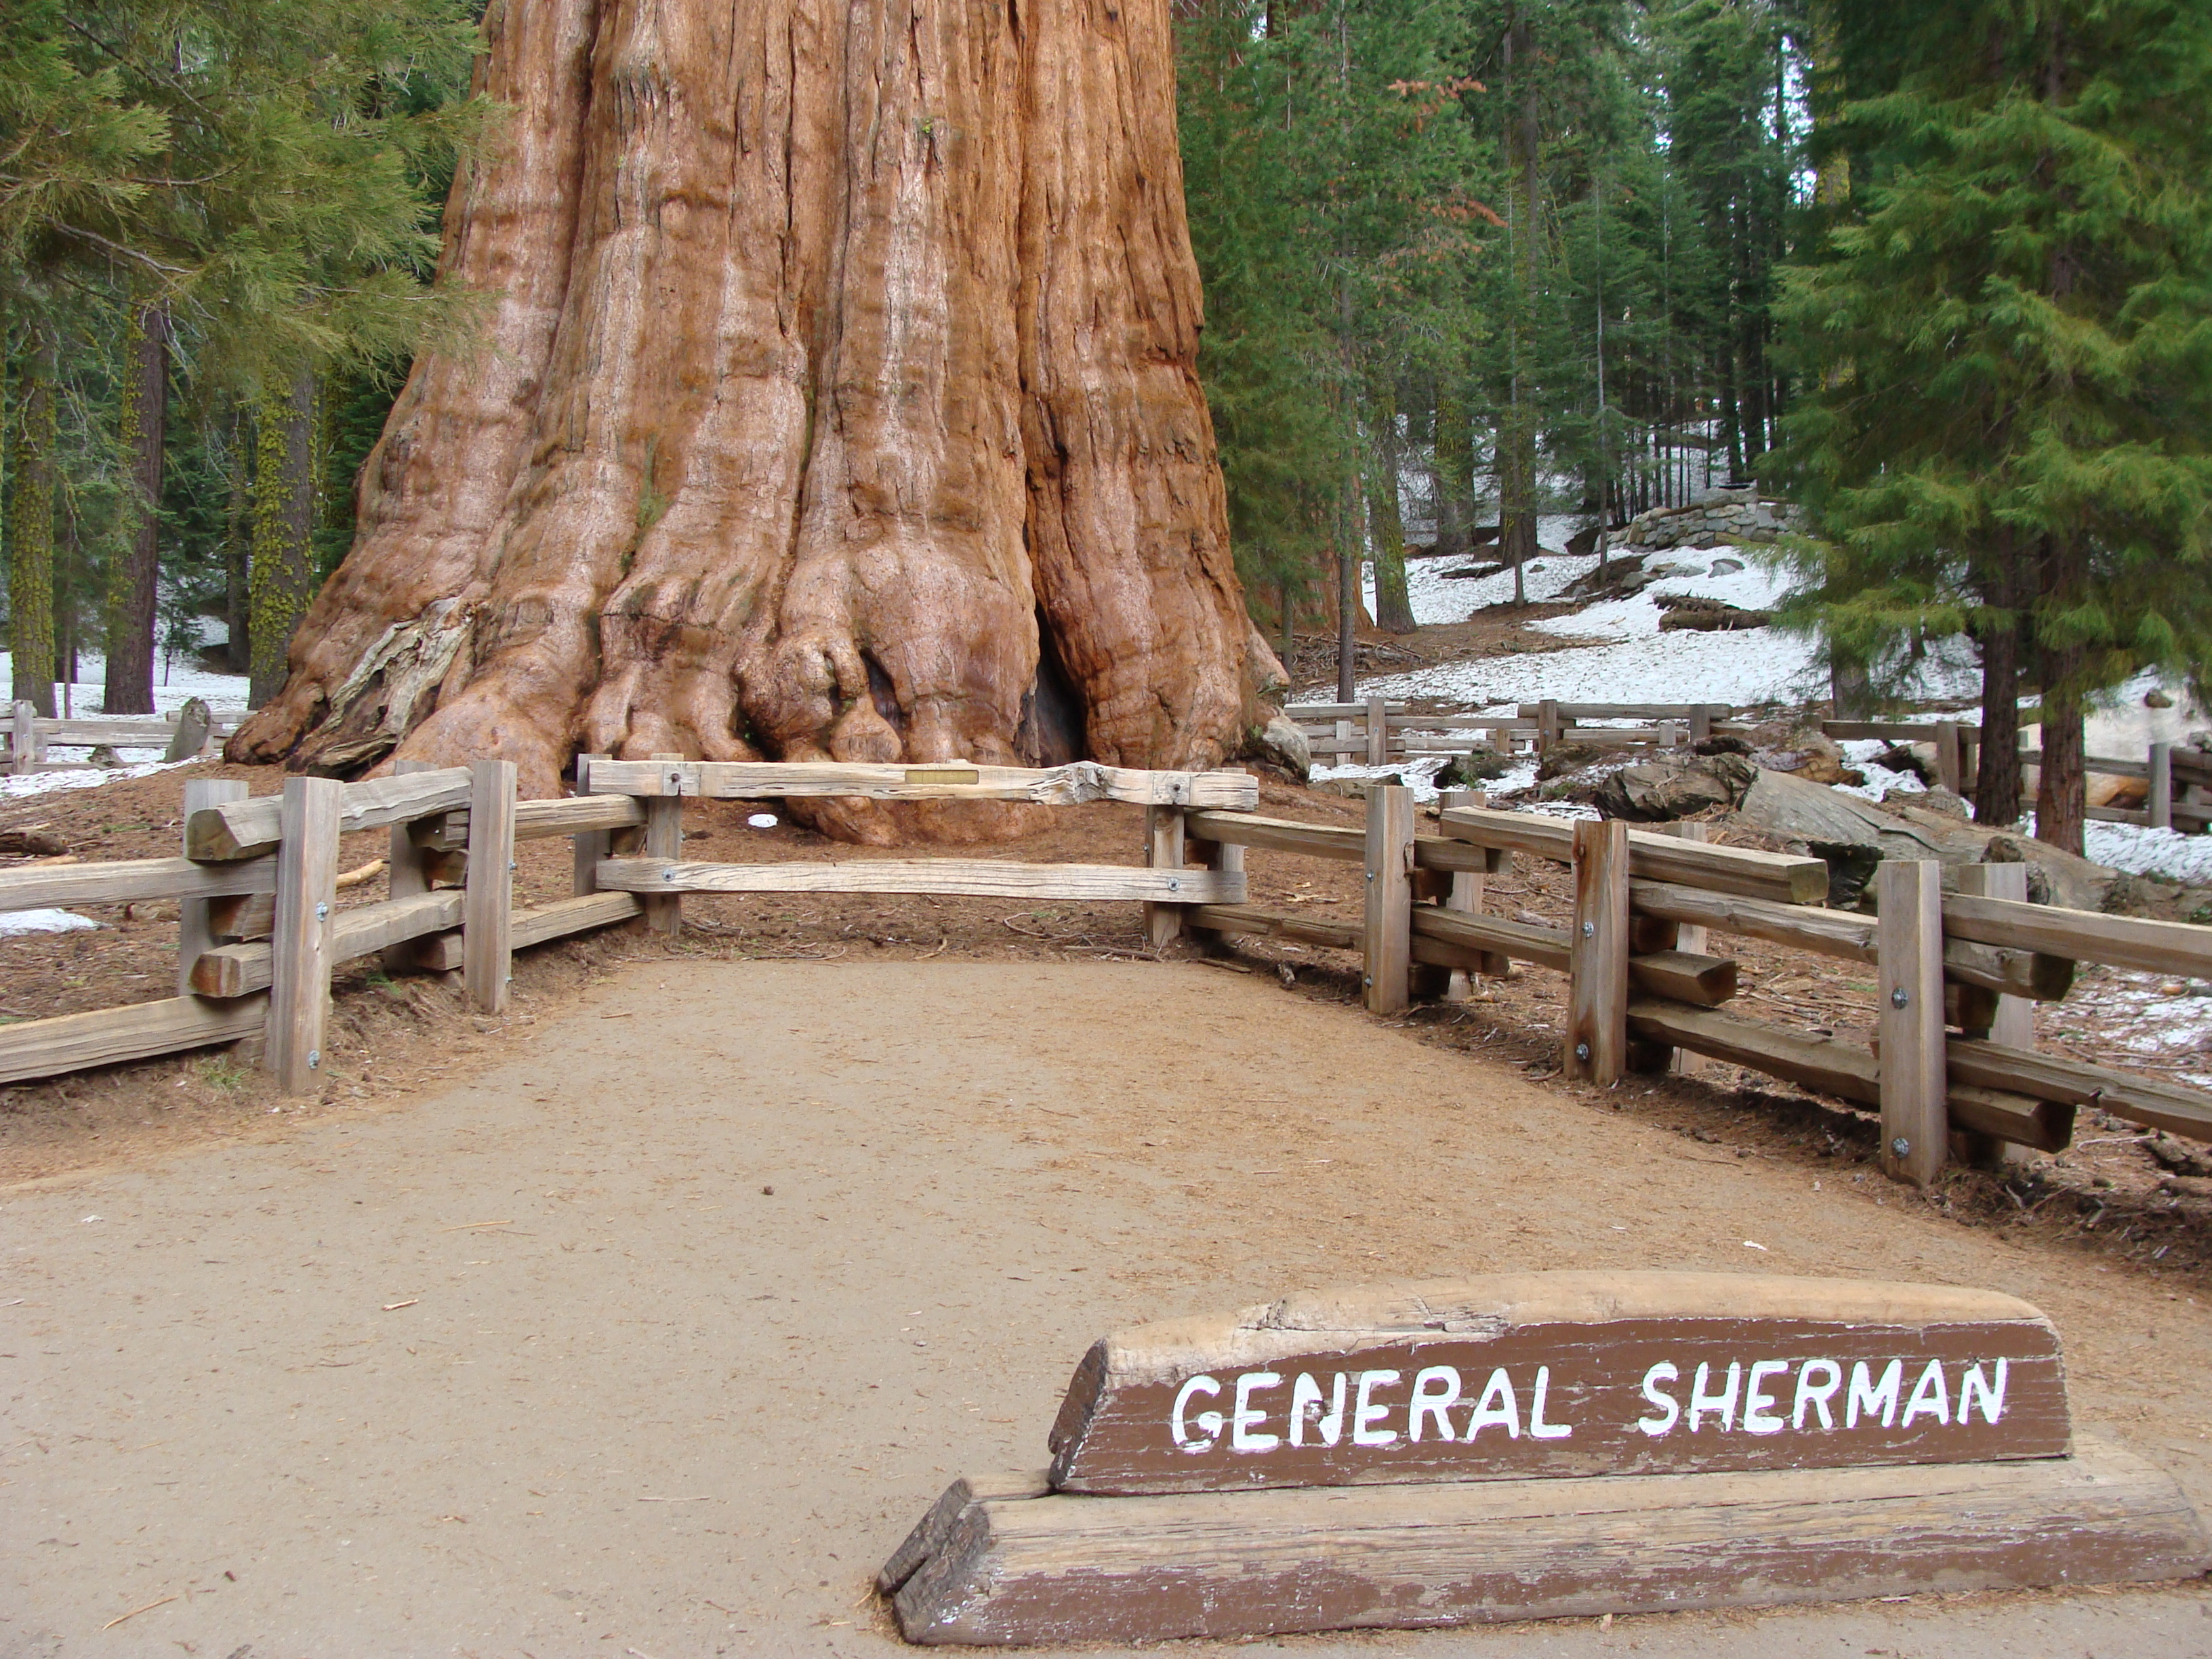 This legendary tree is not the tallest, oldest or widest, but it's one of the most famous sequoias and well worth a visit to the park.